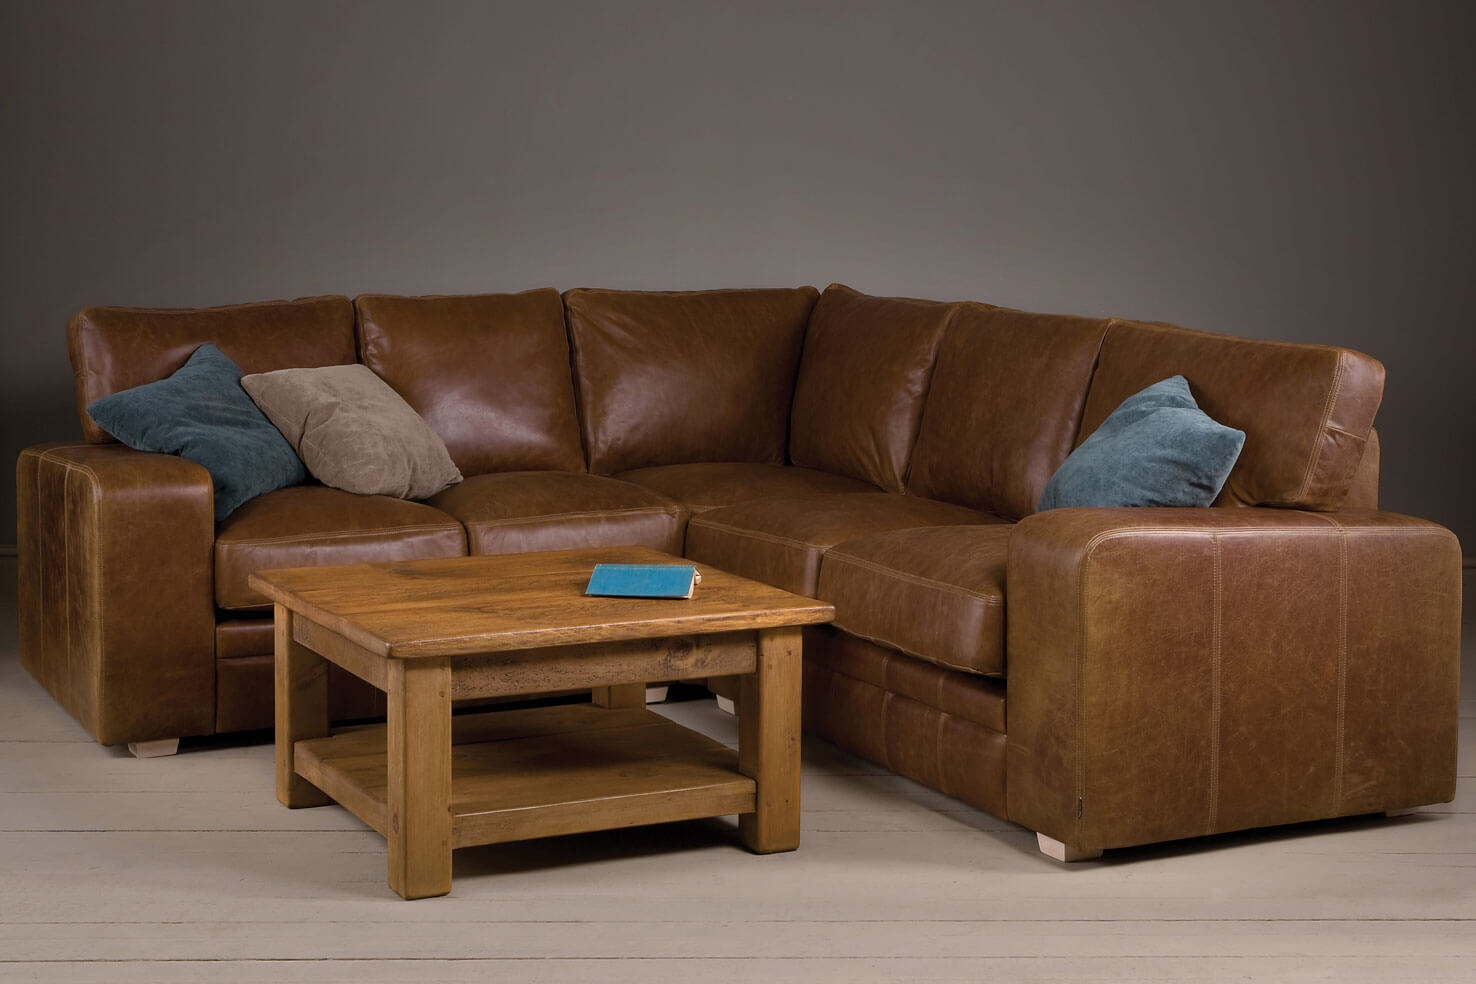 furniture village leather corner sofa bed seat covers online india to start a life with altered